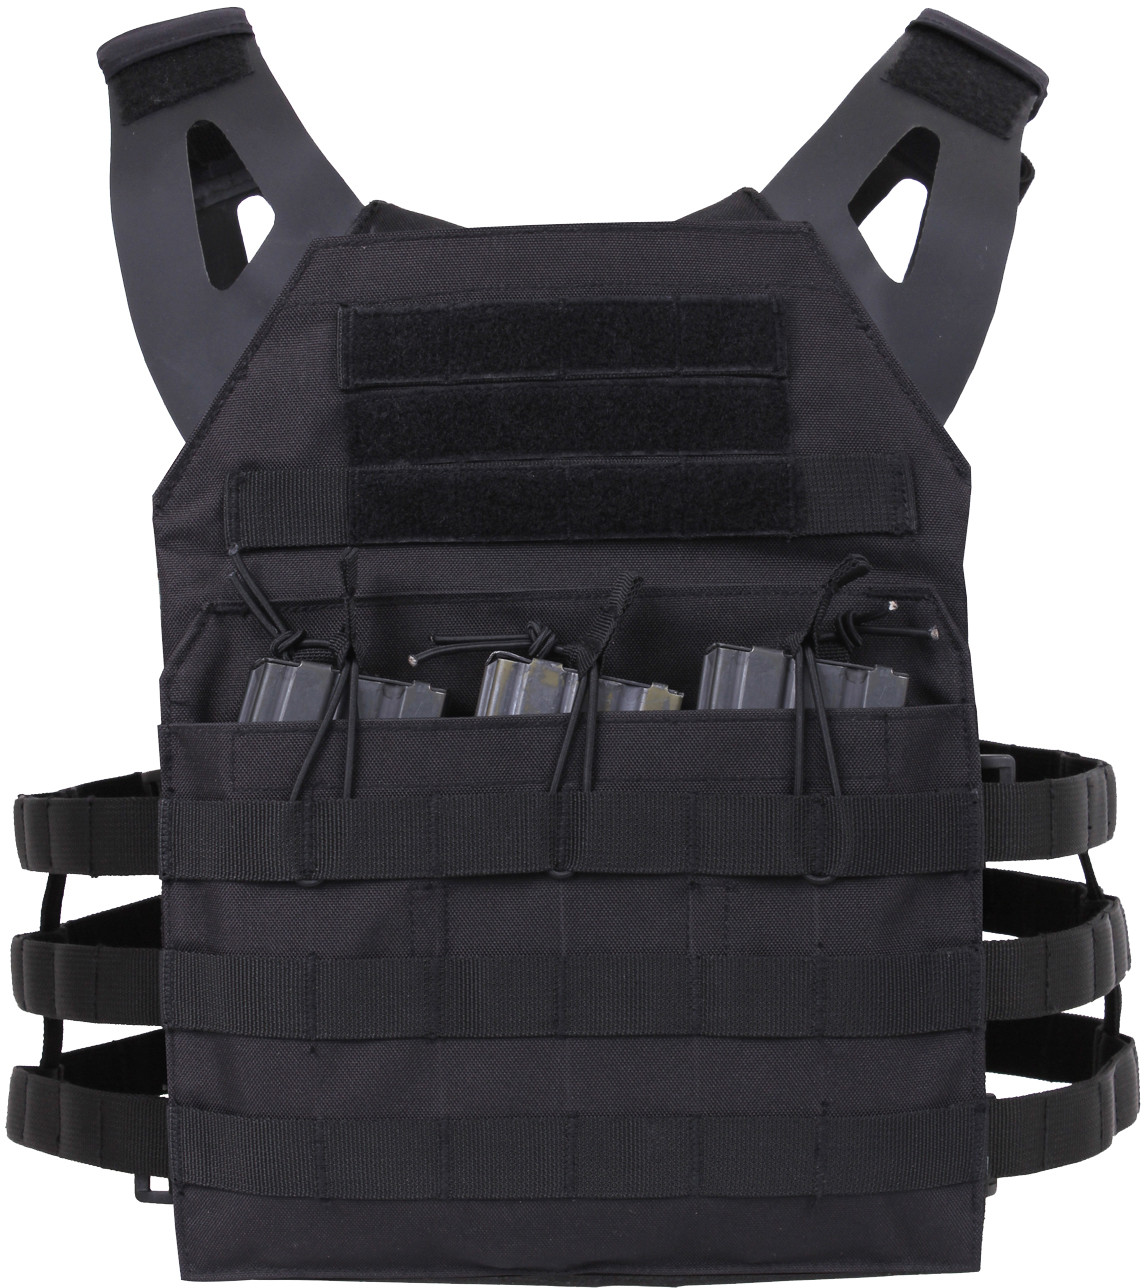 More Views. Black Lightweight MOLLE Compatible 3 Magazine Pouch Plate  Carrier ... 349f21eb8a4